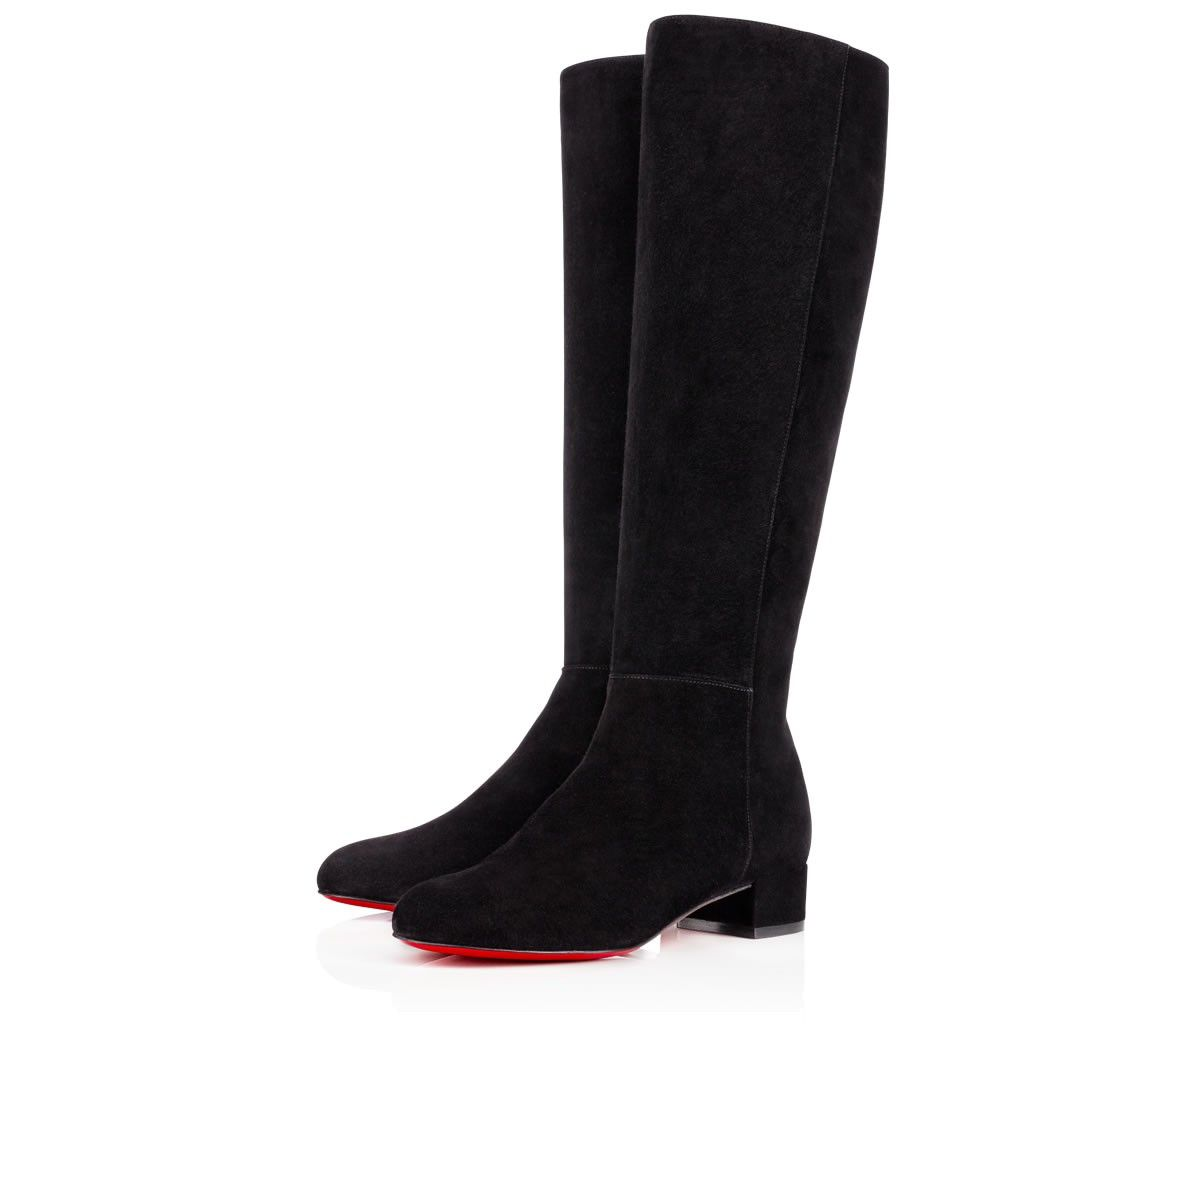 Christian Louboutin Discount On Sale Now Christian Louboutin Egoutina Spike Toe Suede Boots Black louboutin on salelouboutin biancagreat deals